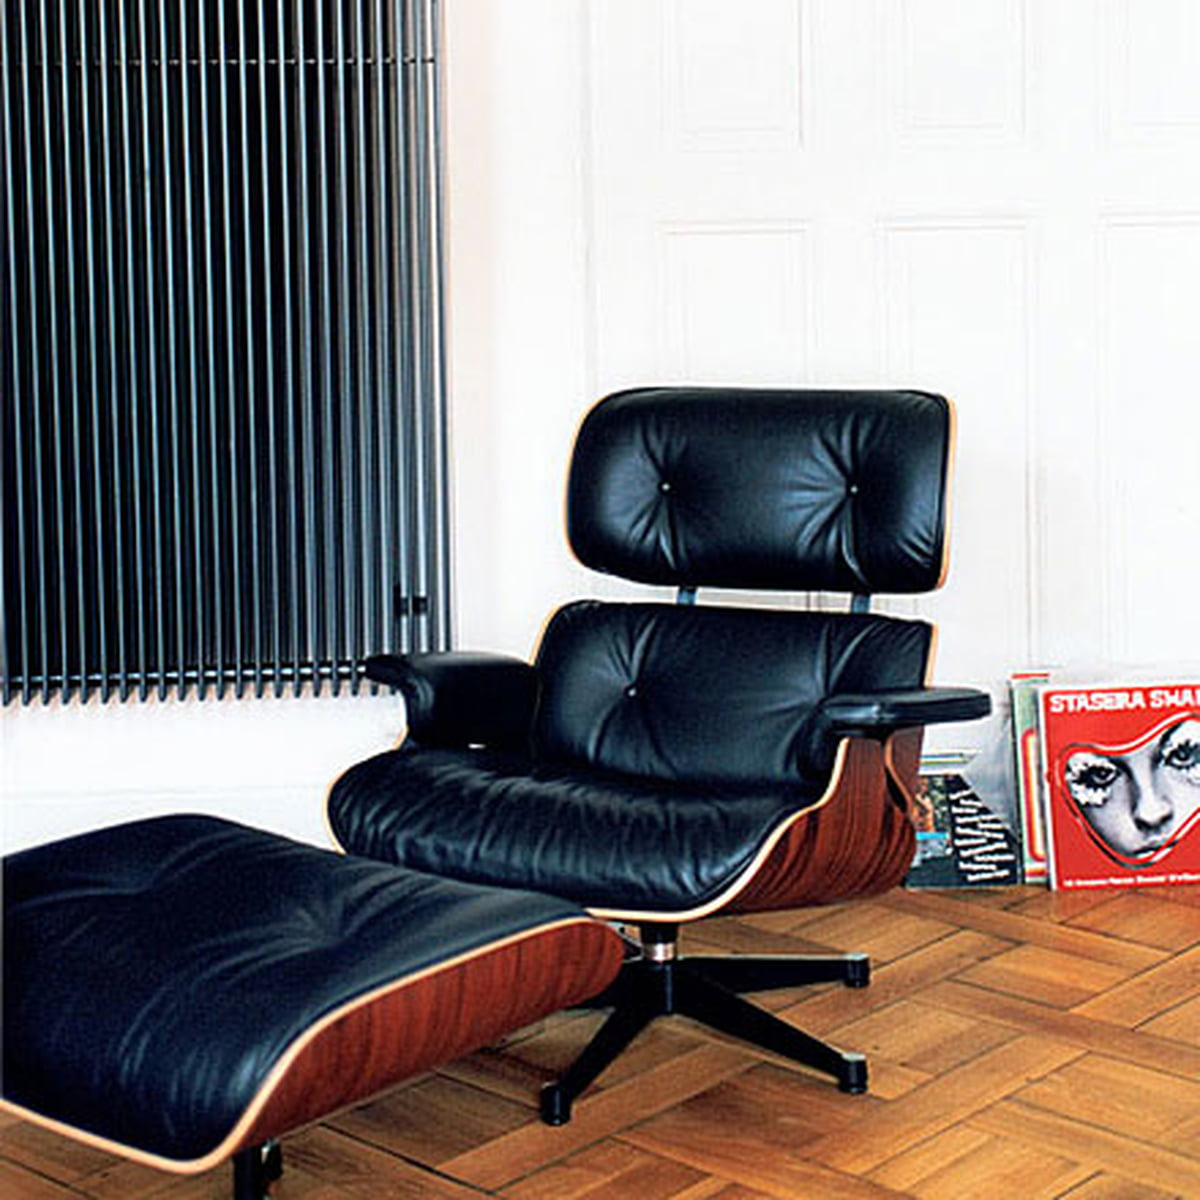 vitra lounge chair ottoman cherry wood. Black Bedroom Furniture Sets. Home Design Ideas